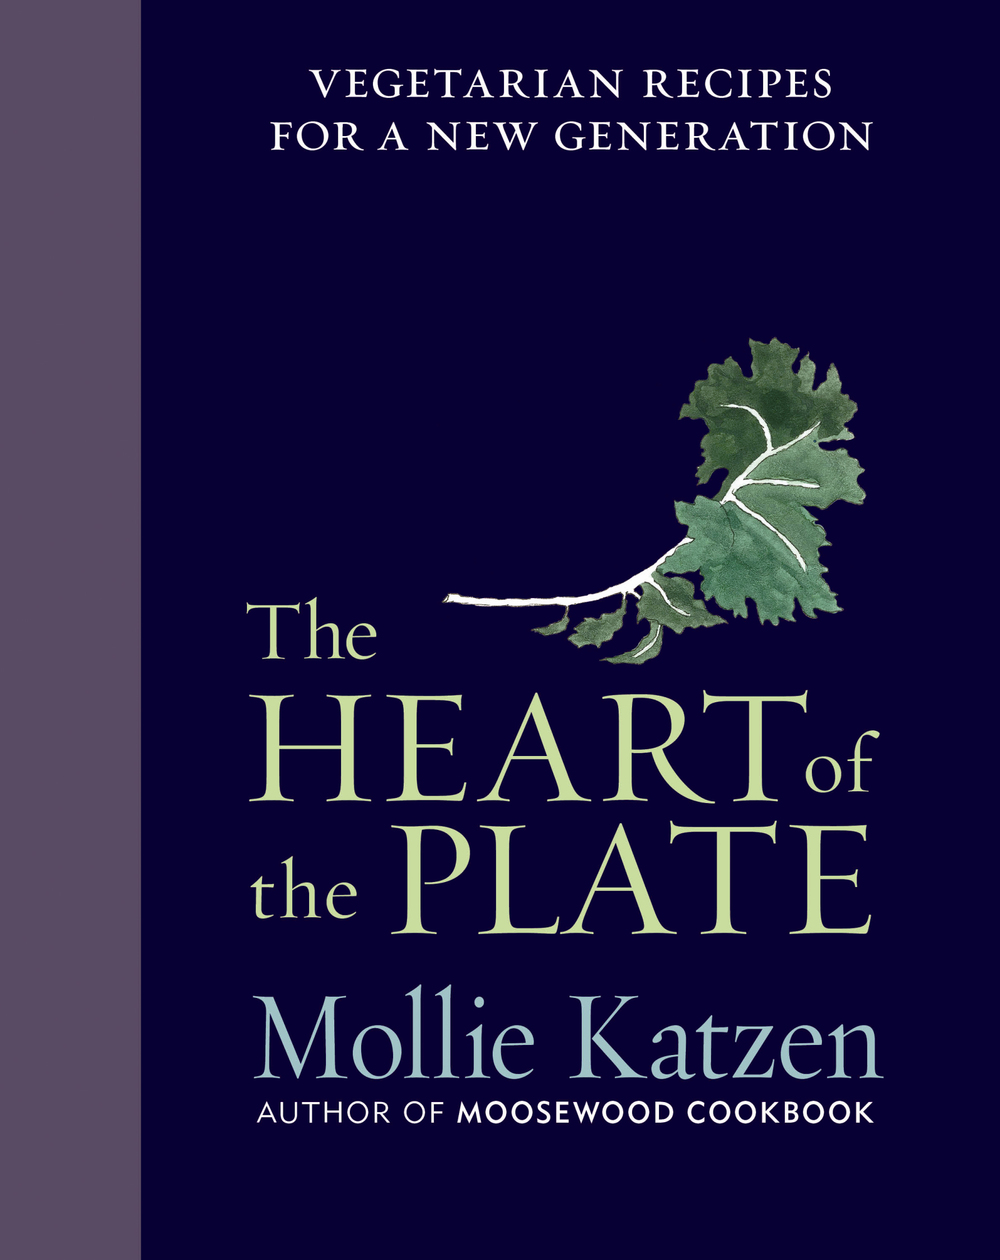 Heart of the Plate Cover Art Courtesy Houghton Mifflin Harcourt.jpg